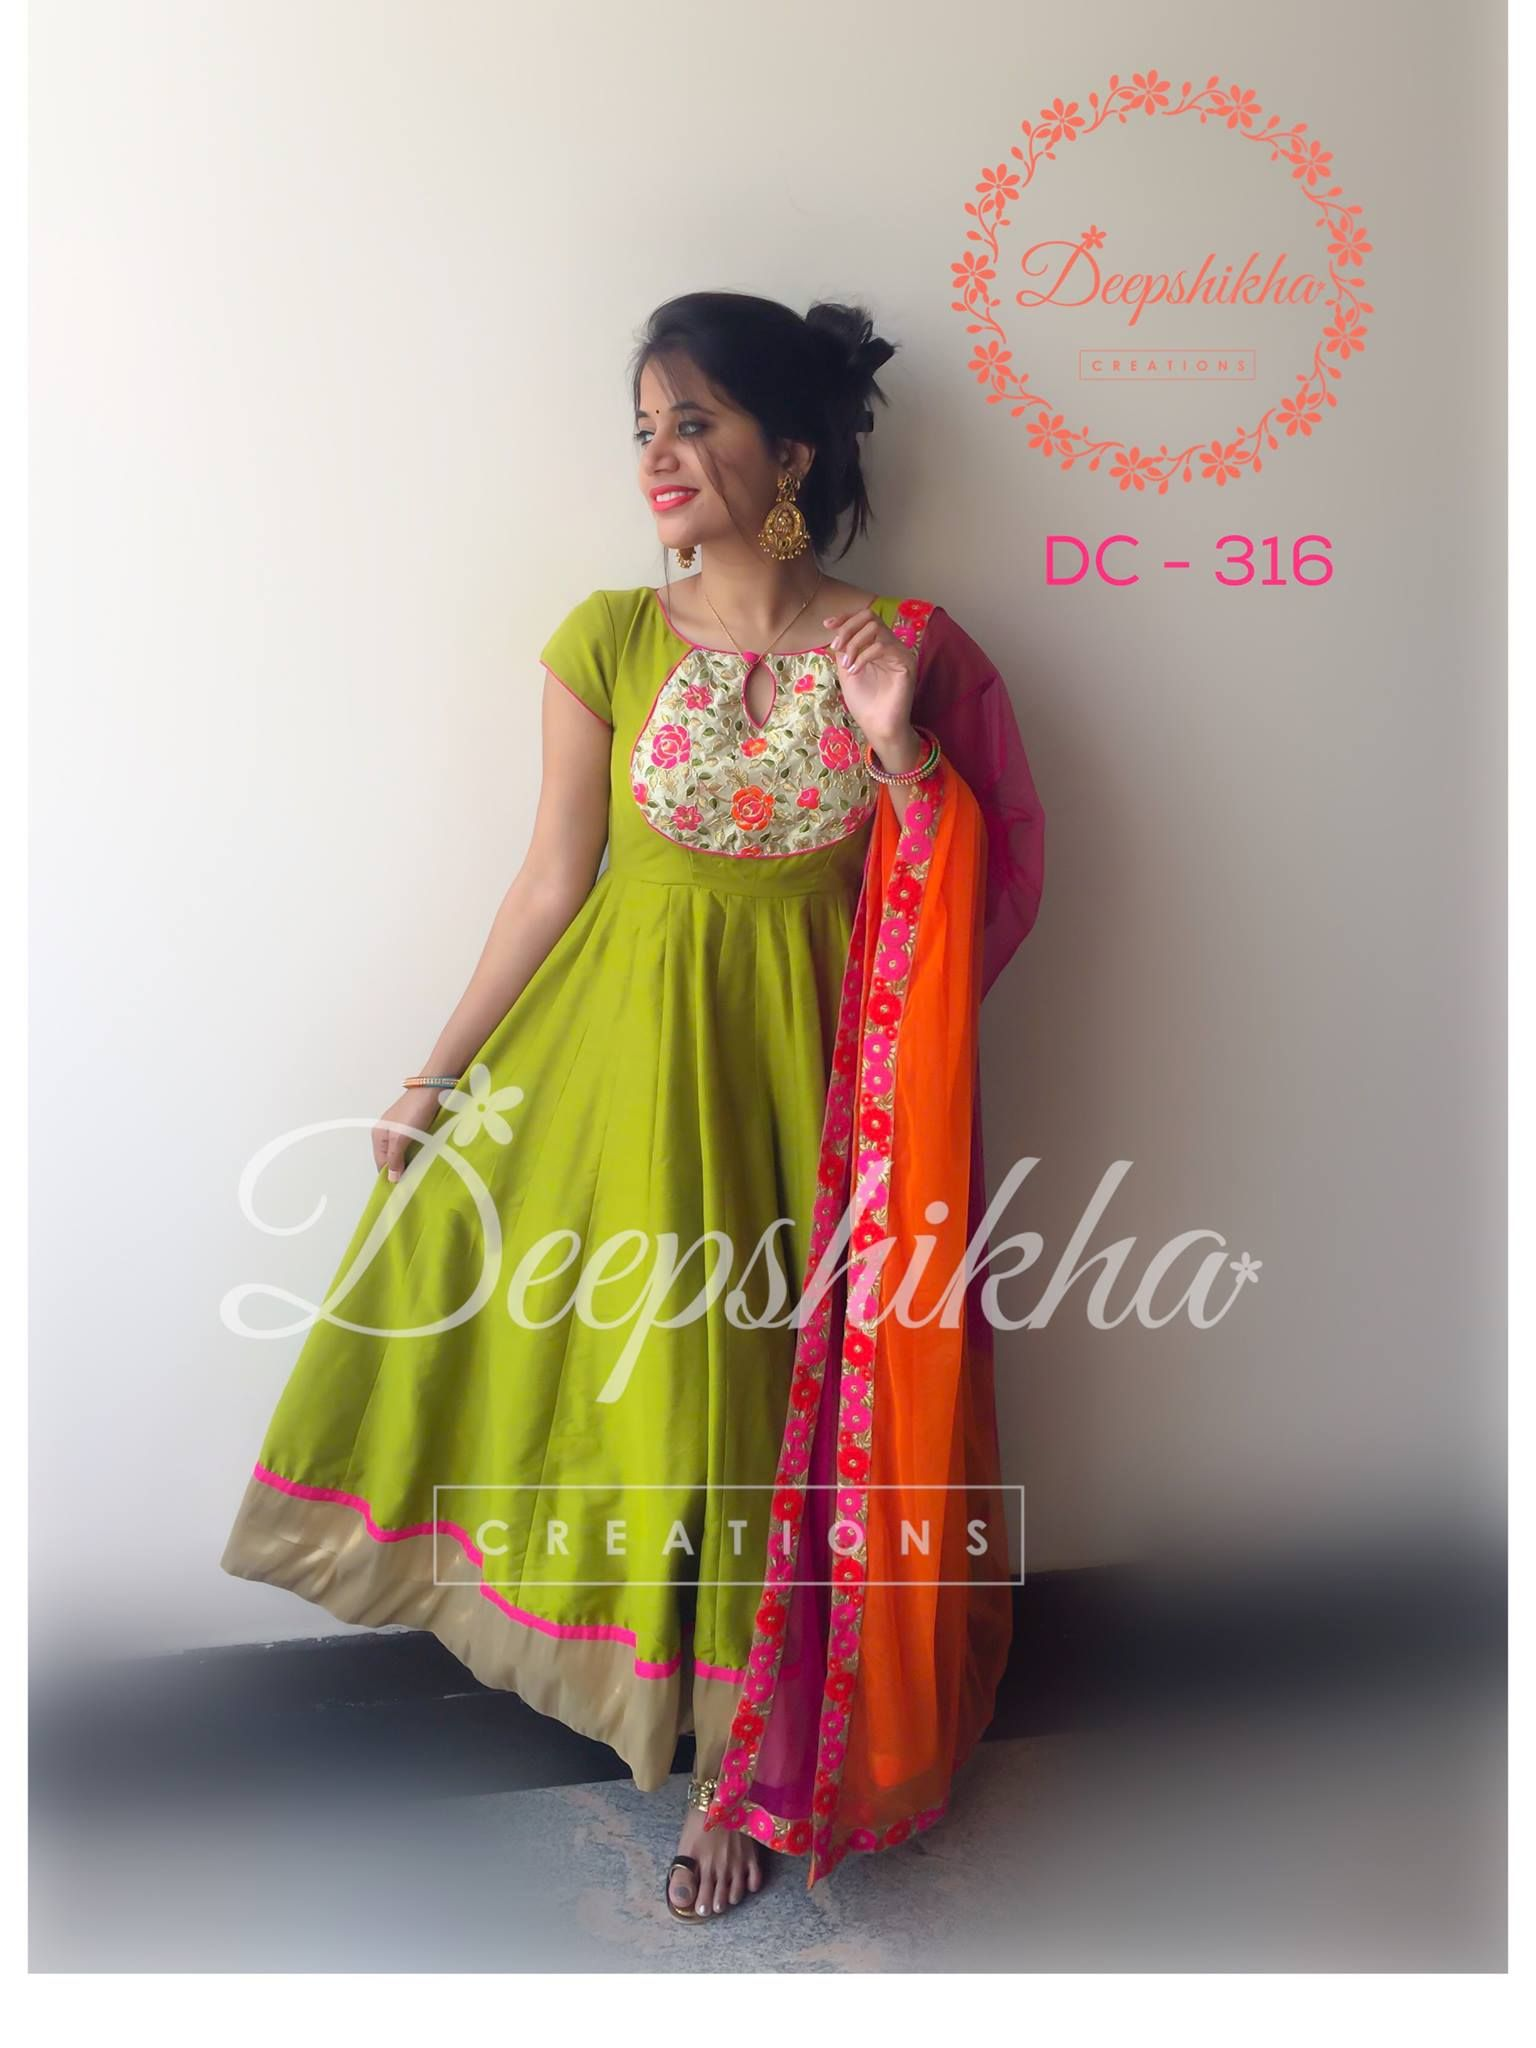 809f63cce6318d DC - 316 For queries kindly inbox or Email - deepshikhacreations gmail.com  Whatsapp   Call - +919059683293